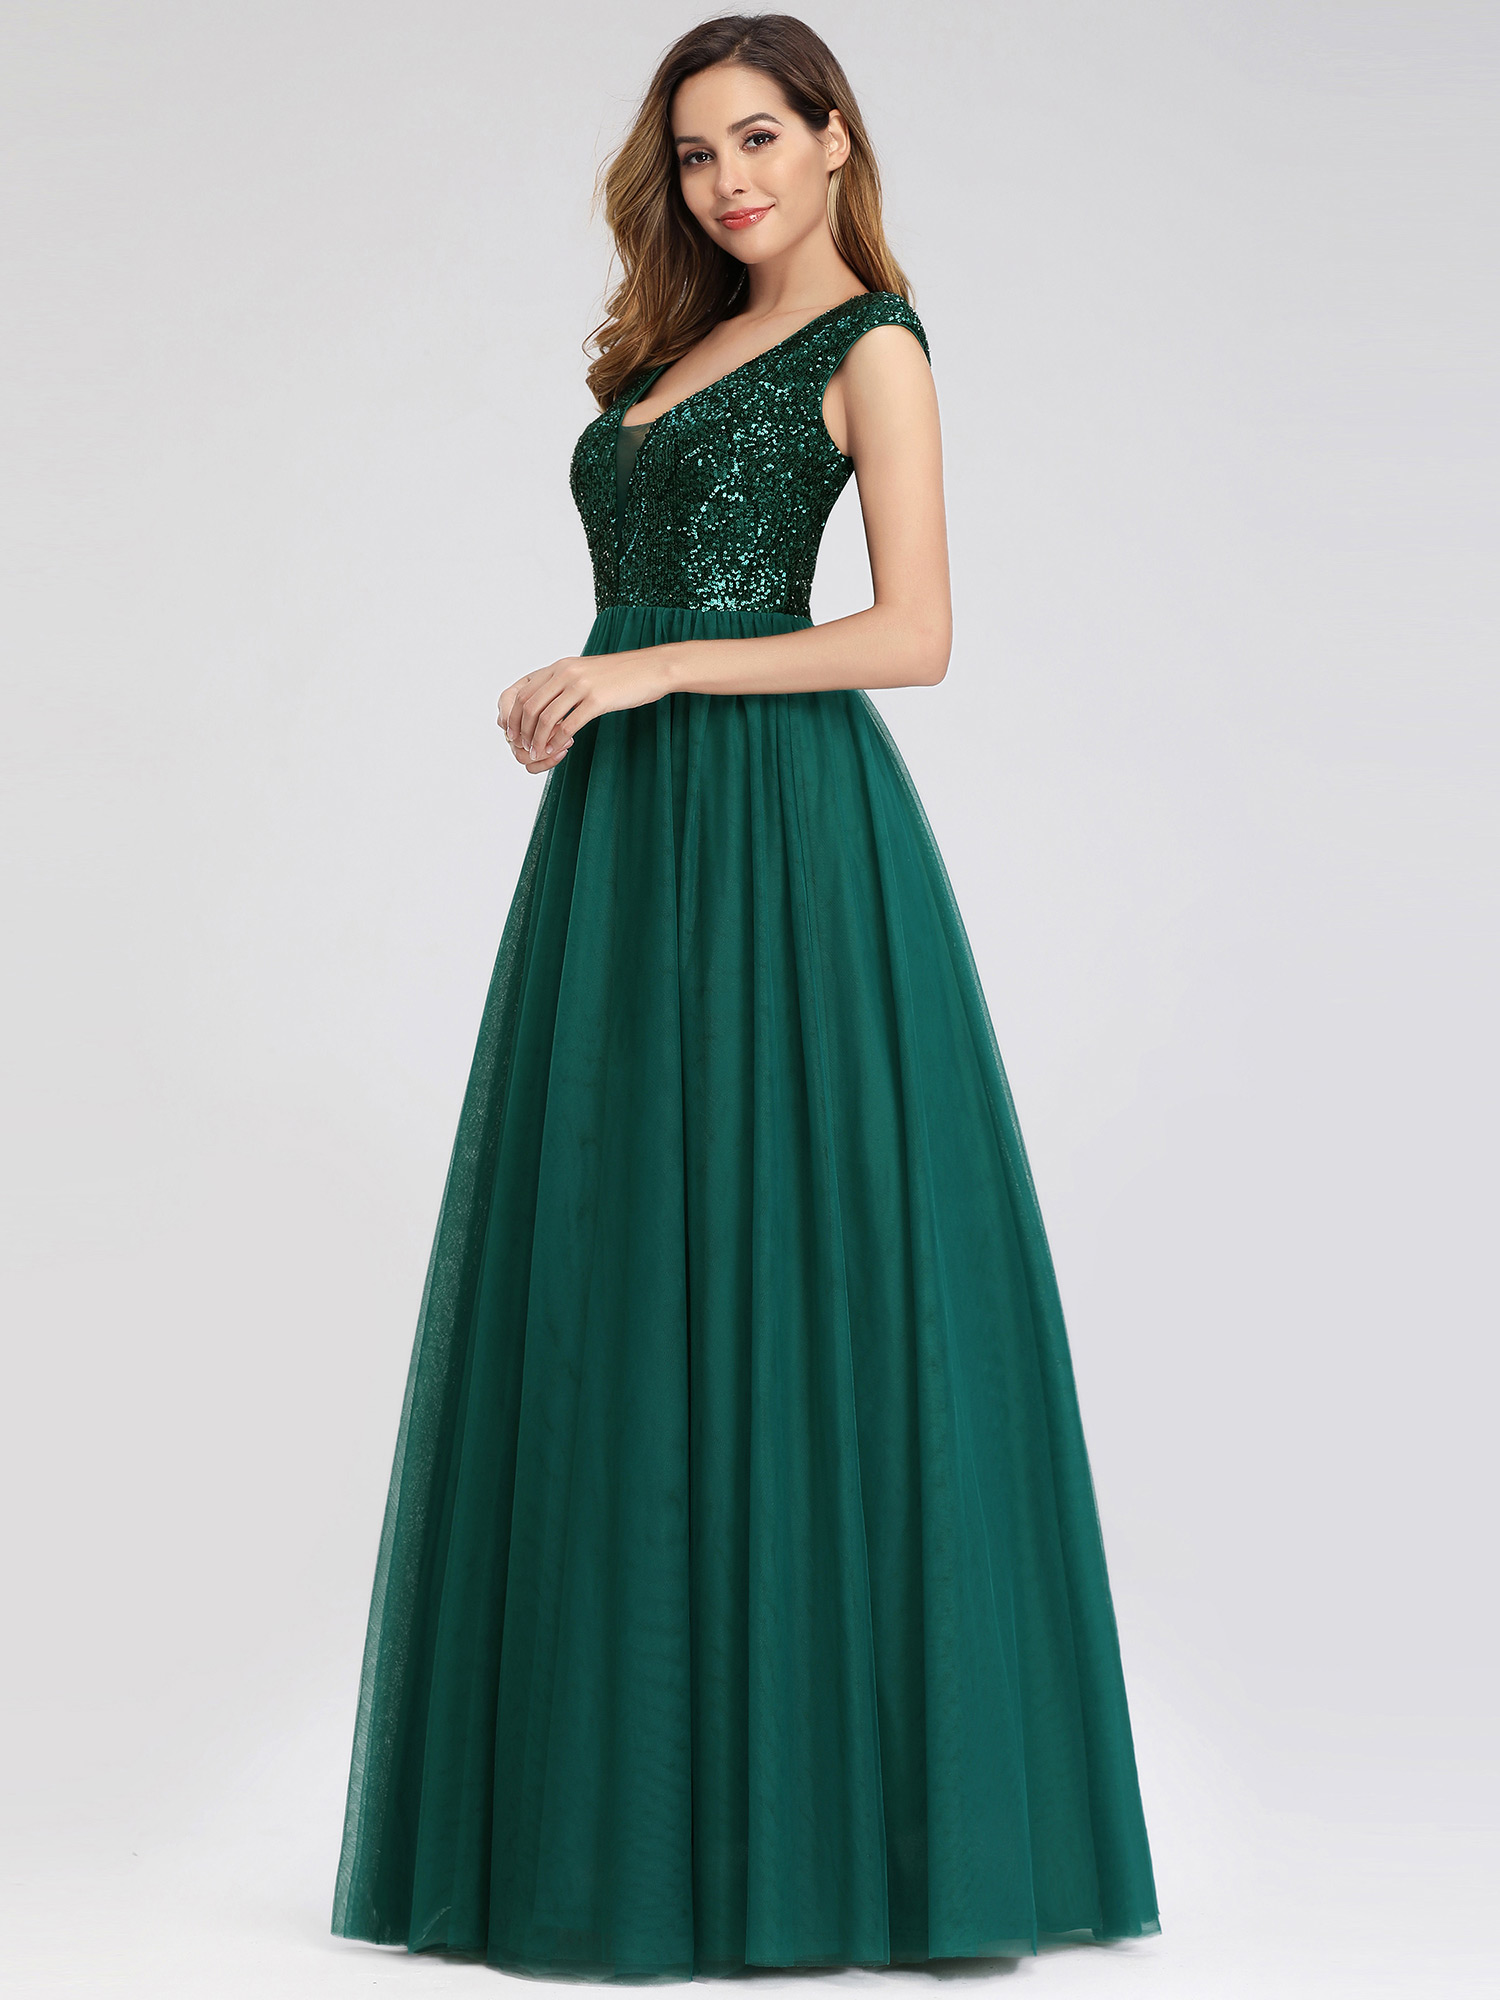 Ever-Pretty-A-Line-Bridesmaid-Dresses-Long-Chiffon-Lace-Wedding-Prom-Gown-00983 thumbnail 6